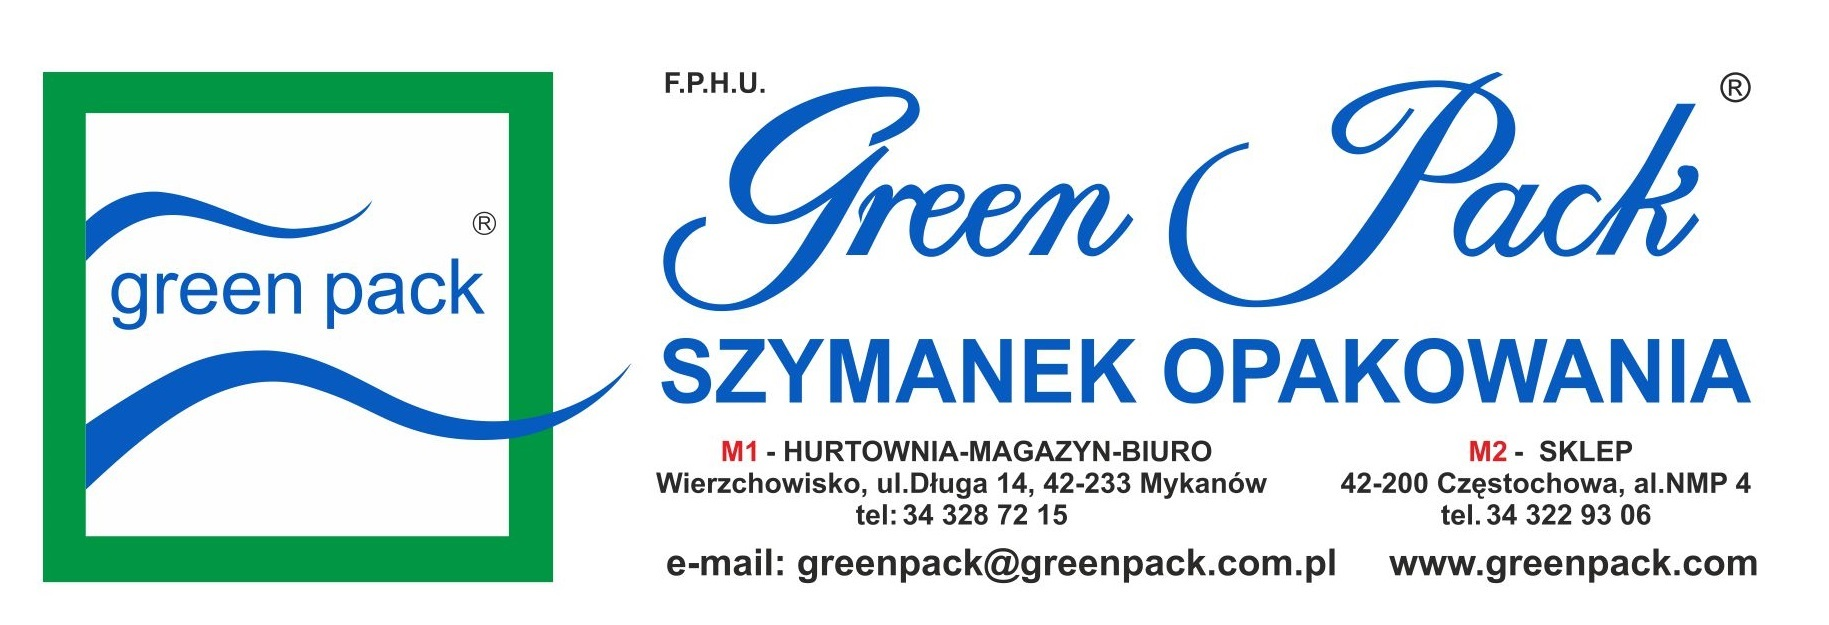 Green Pack logo